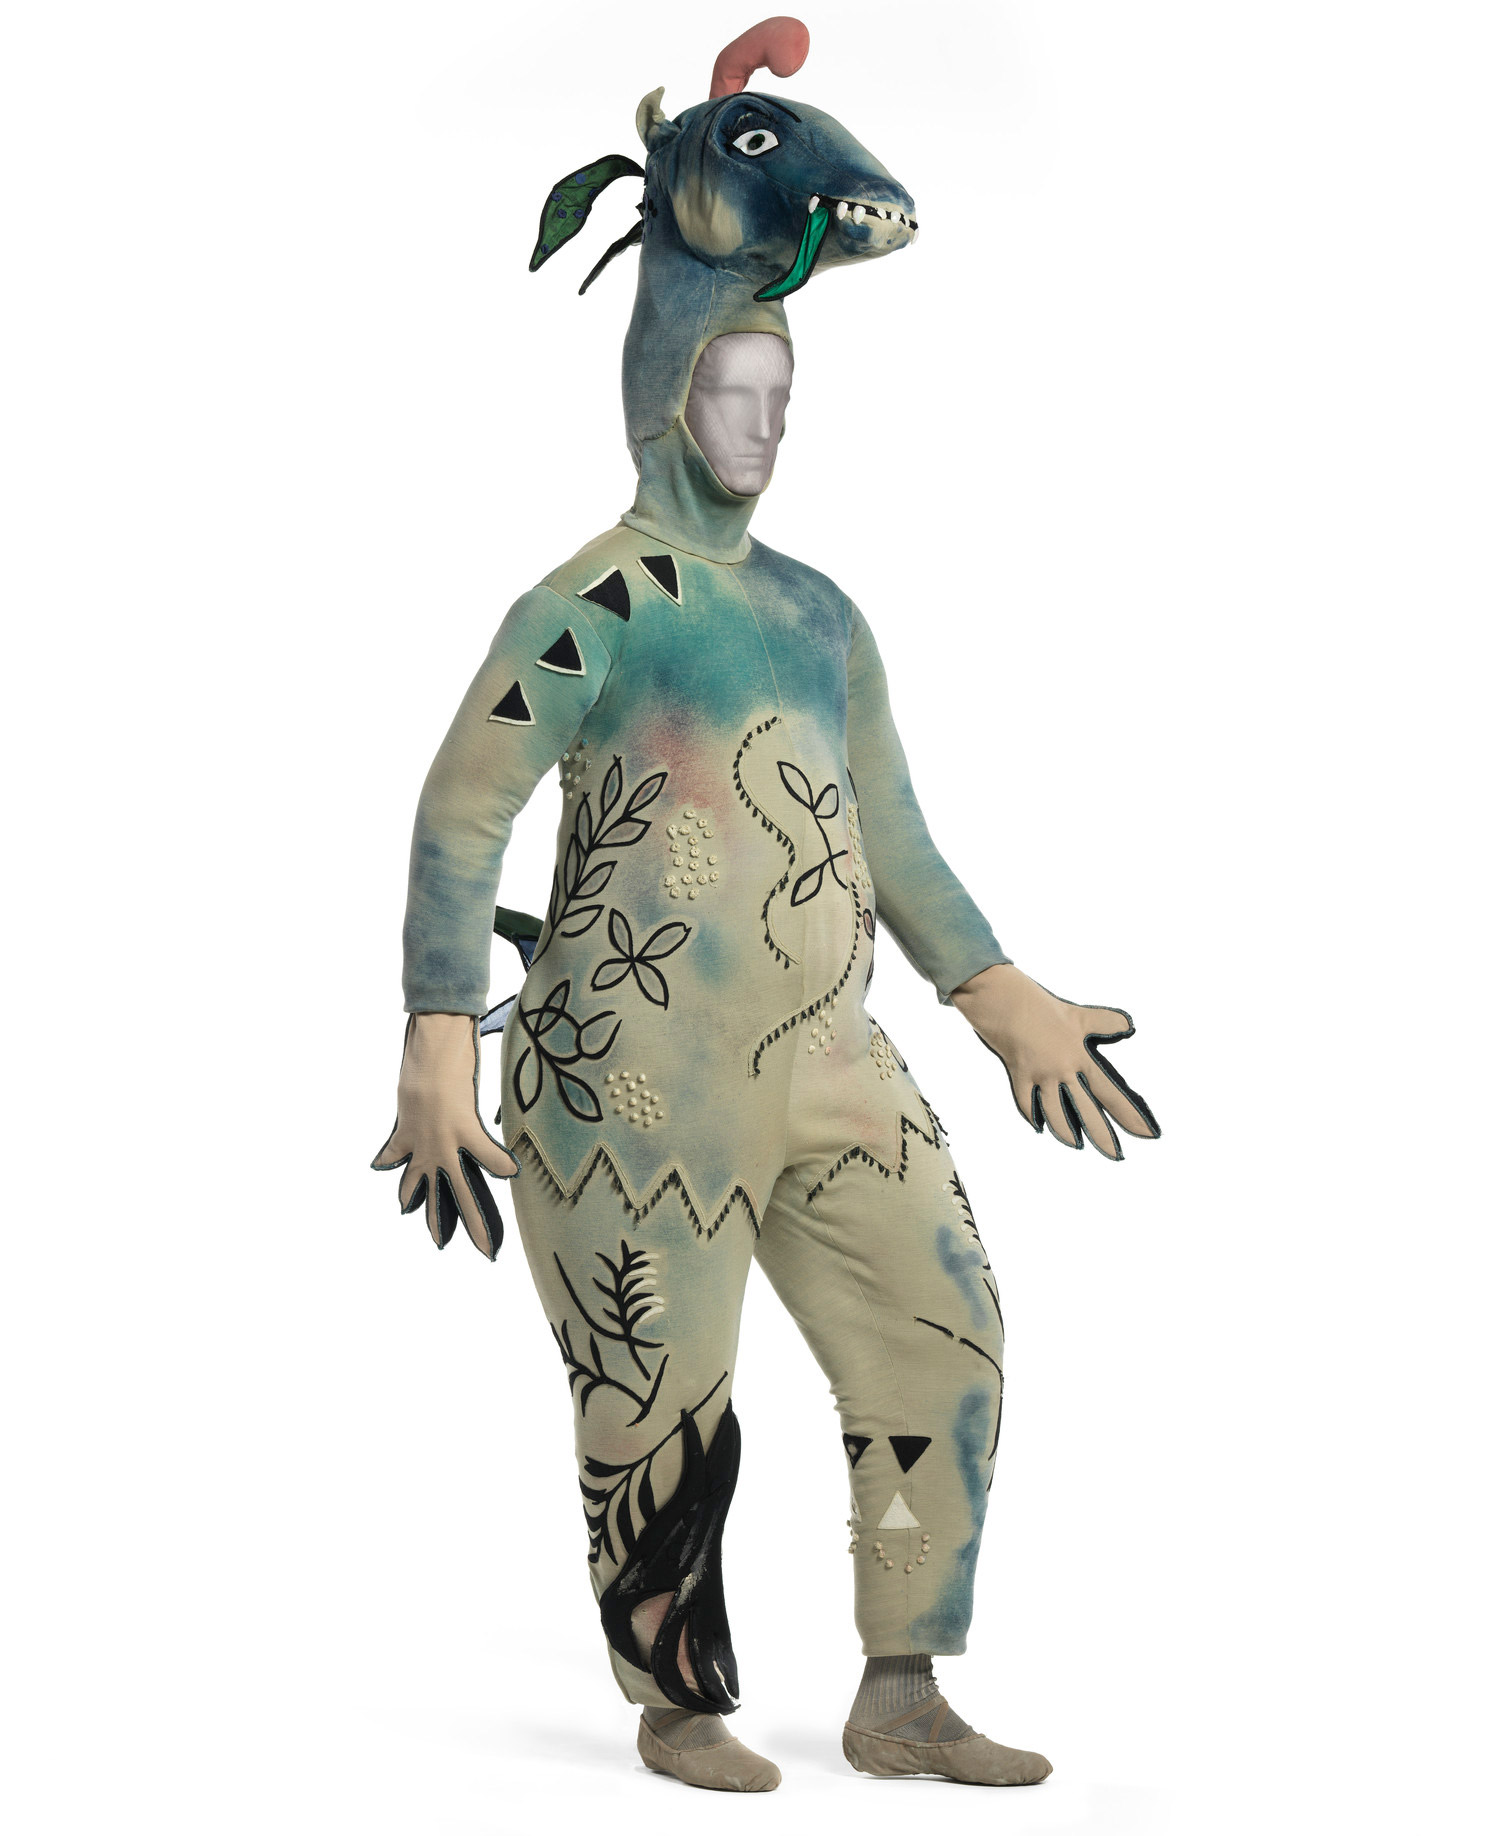 lacma_chagall-fantasies-for-the-stages_the-firebird-costumes4_w